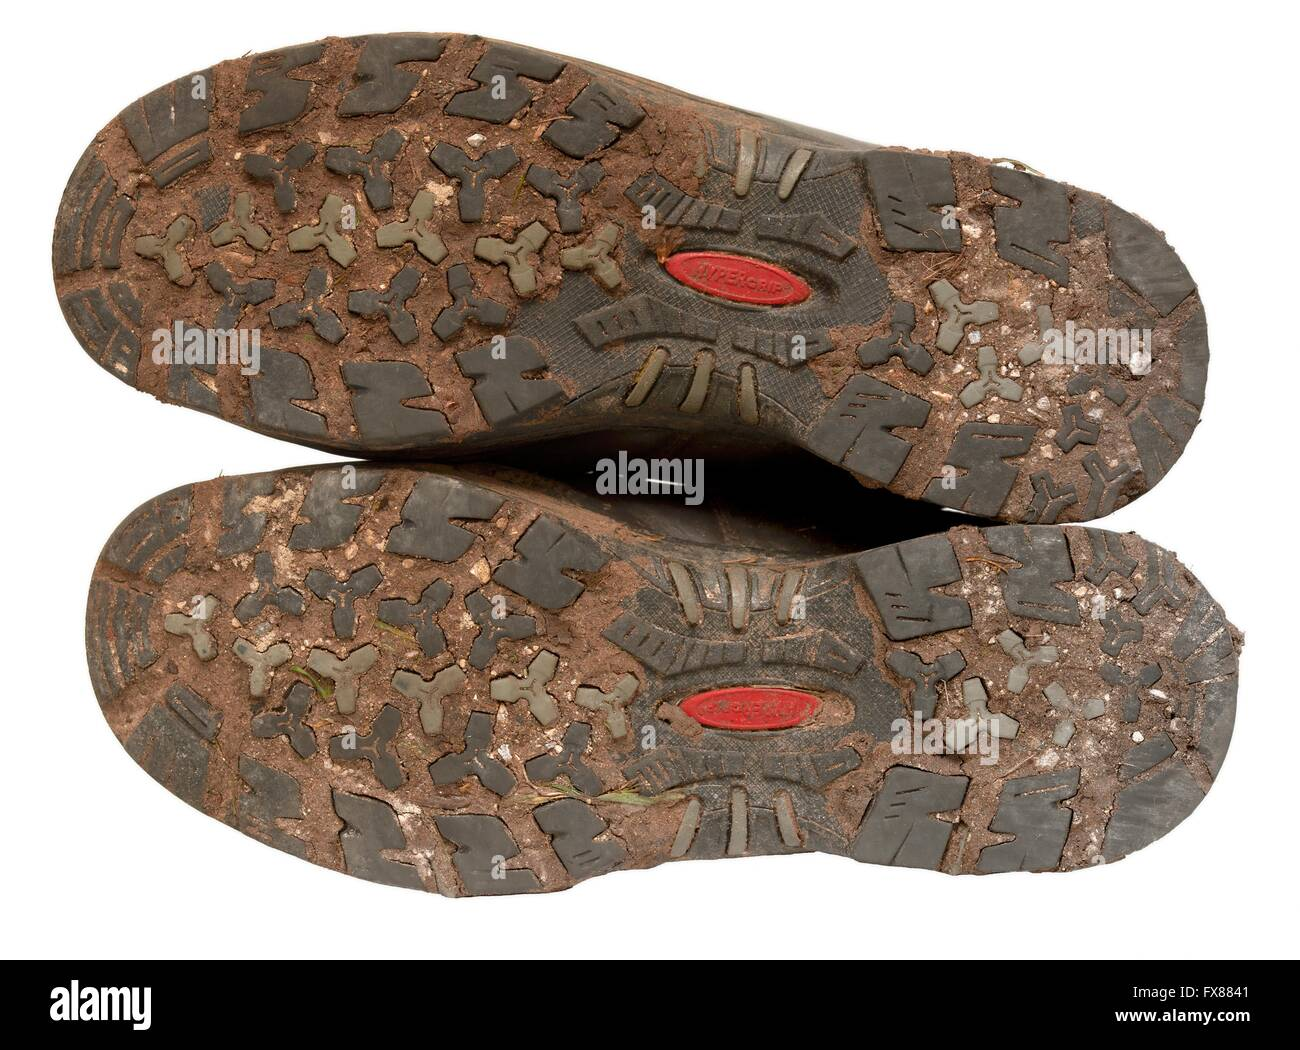 Dried mud on the underside of a pair of walking boots - Stock Image